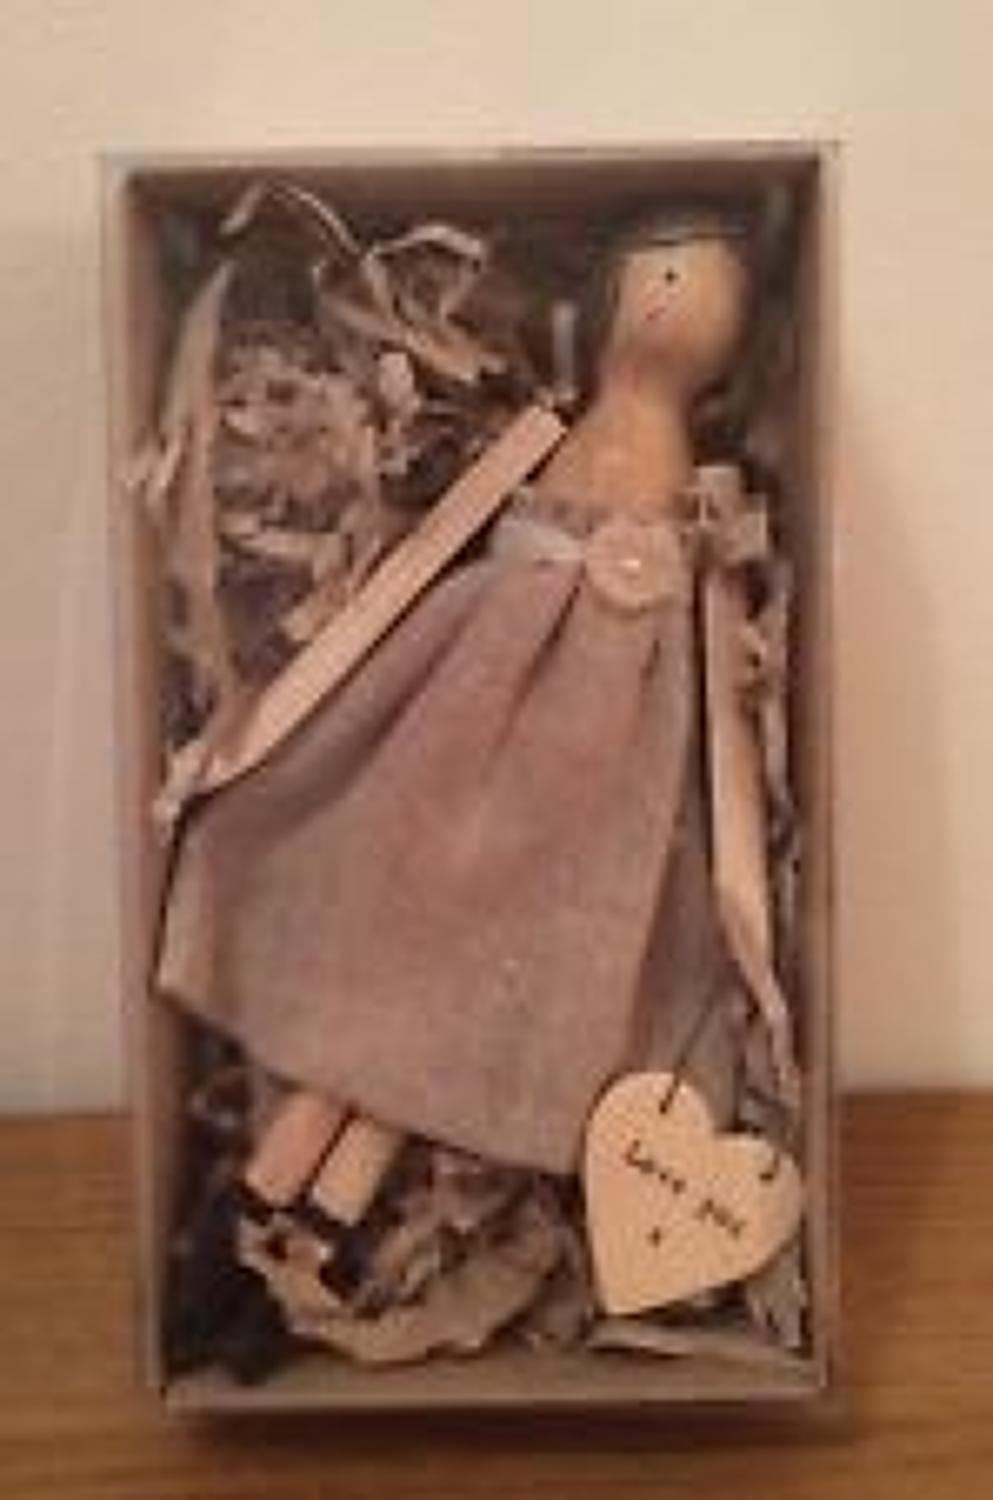 East of India - Wooden girl in box - Love you